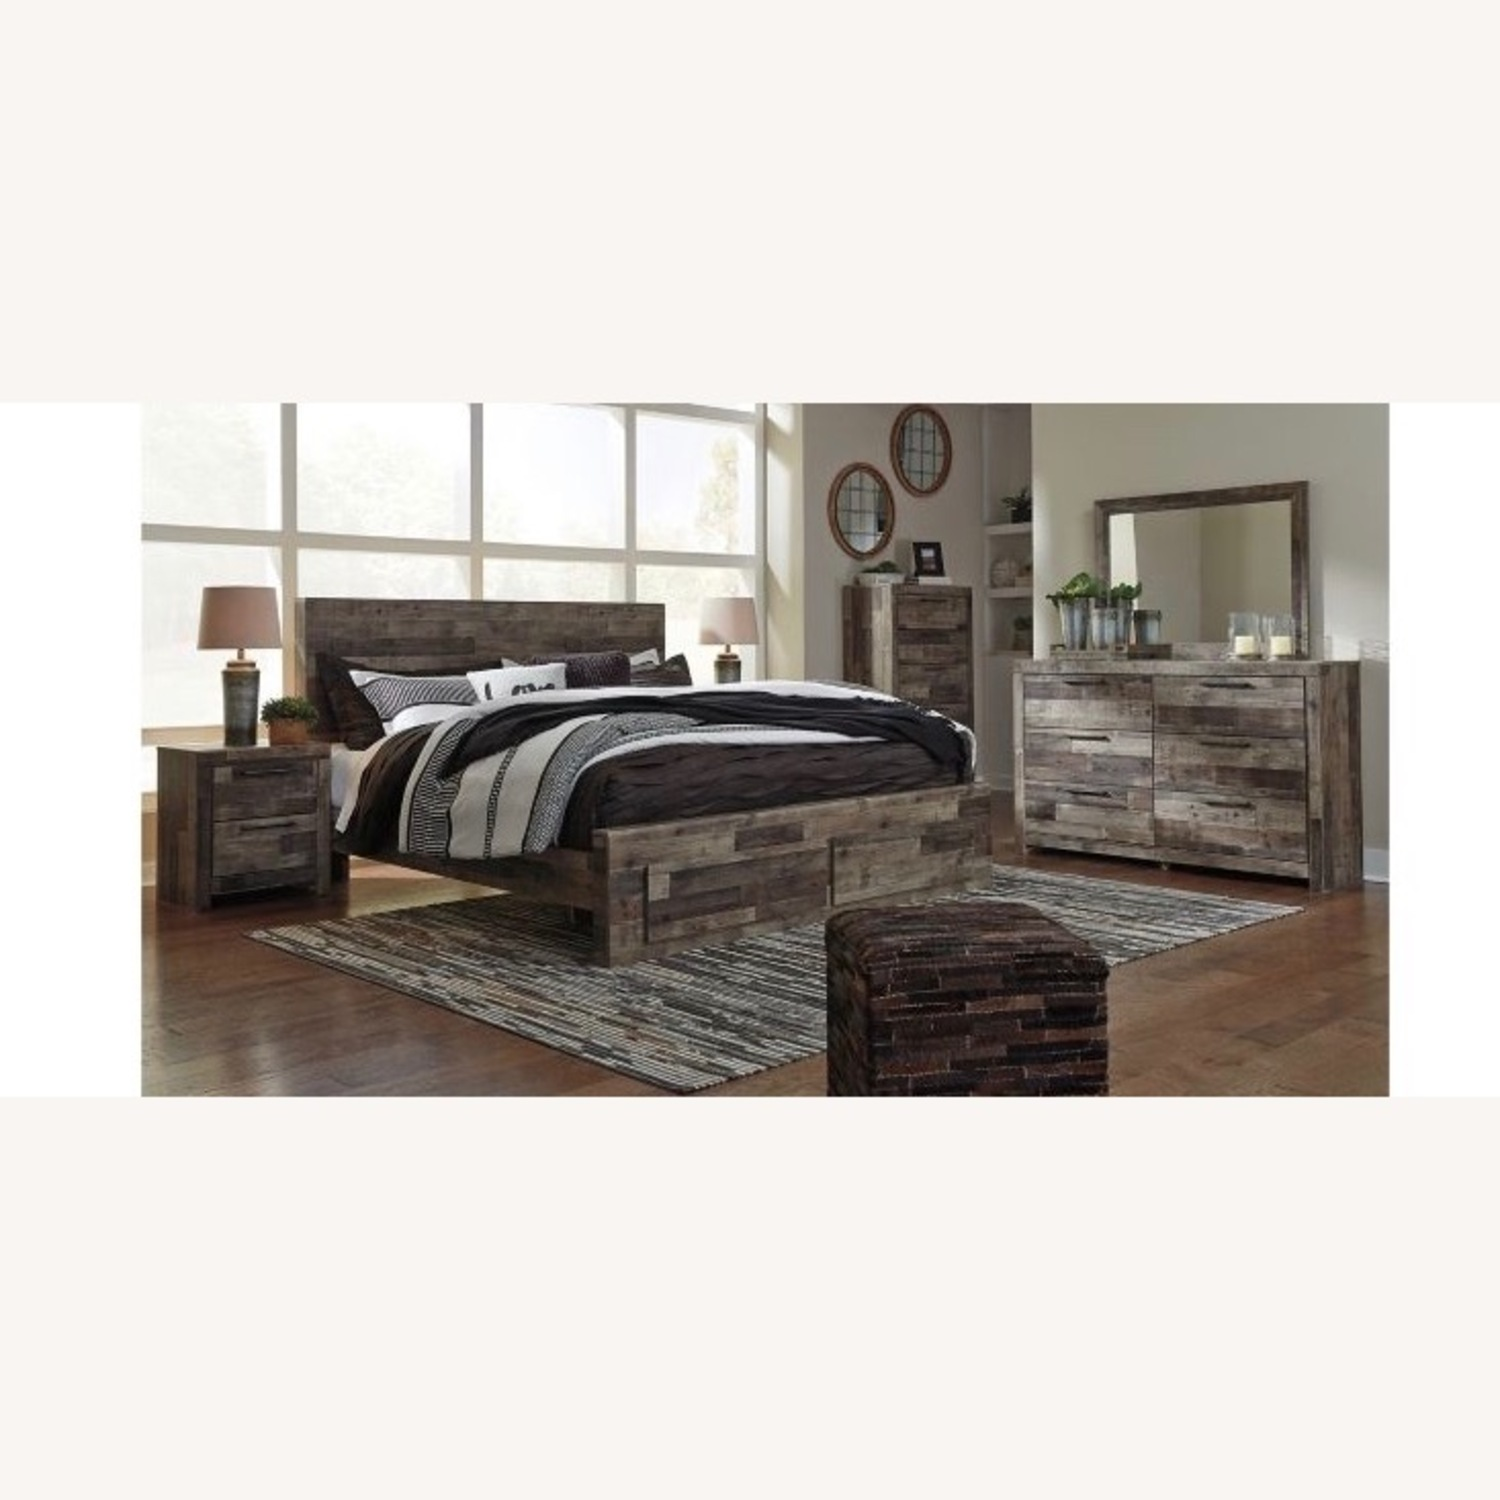 Raymour & Flanigan Ainsworth Queen Size Bed - image-2